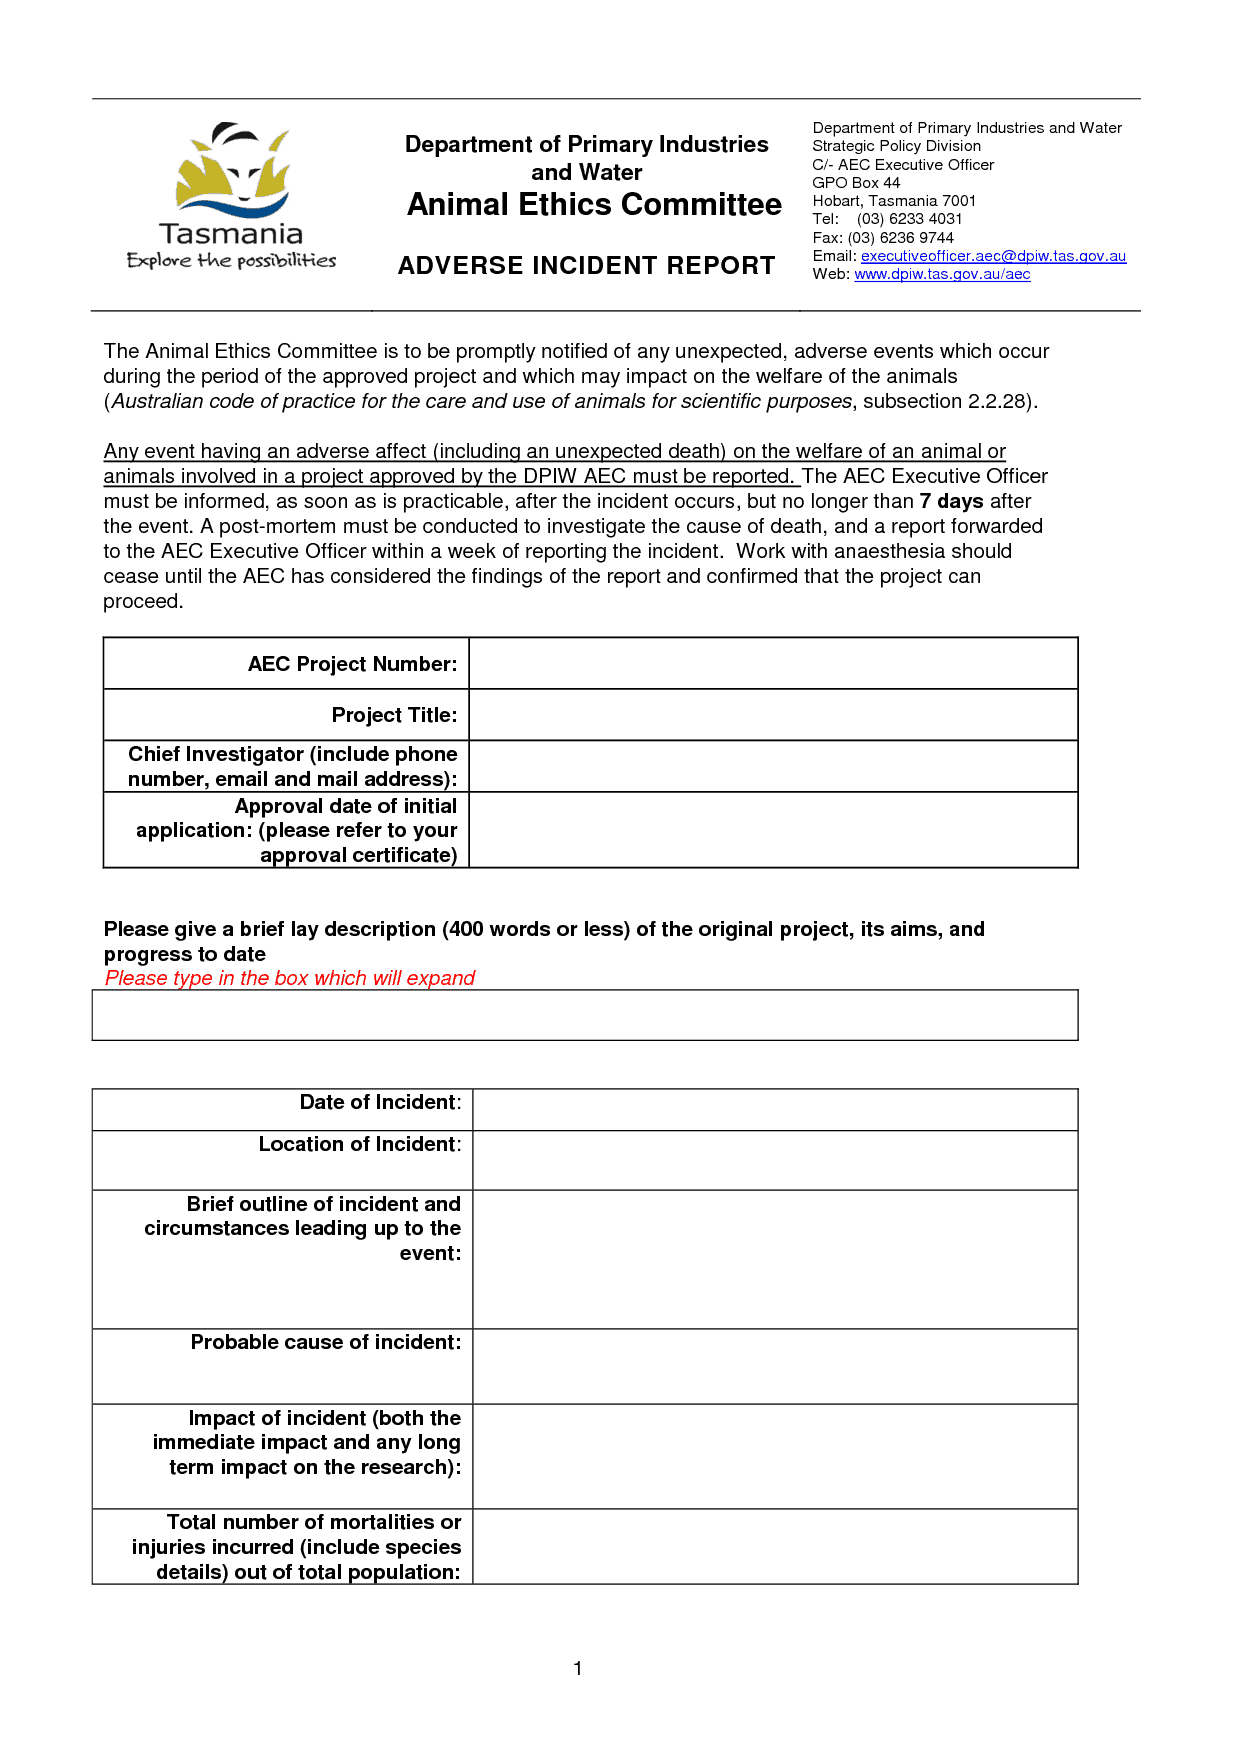 Incident Report sample 13.4